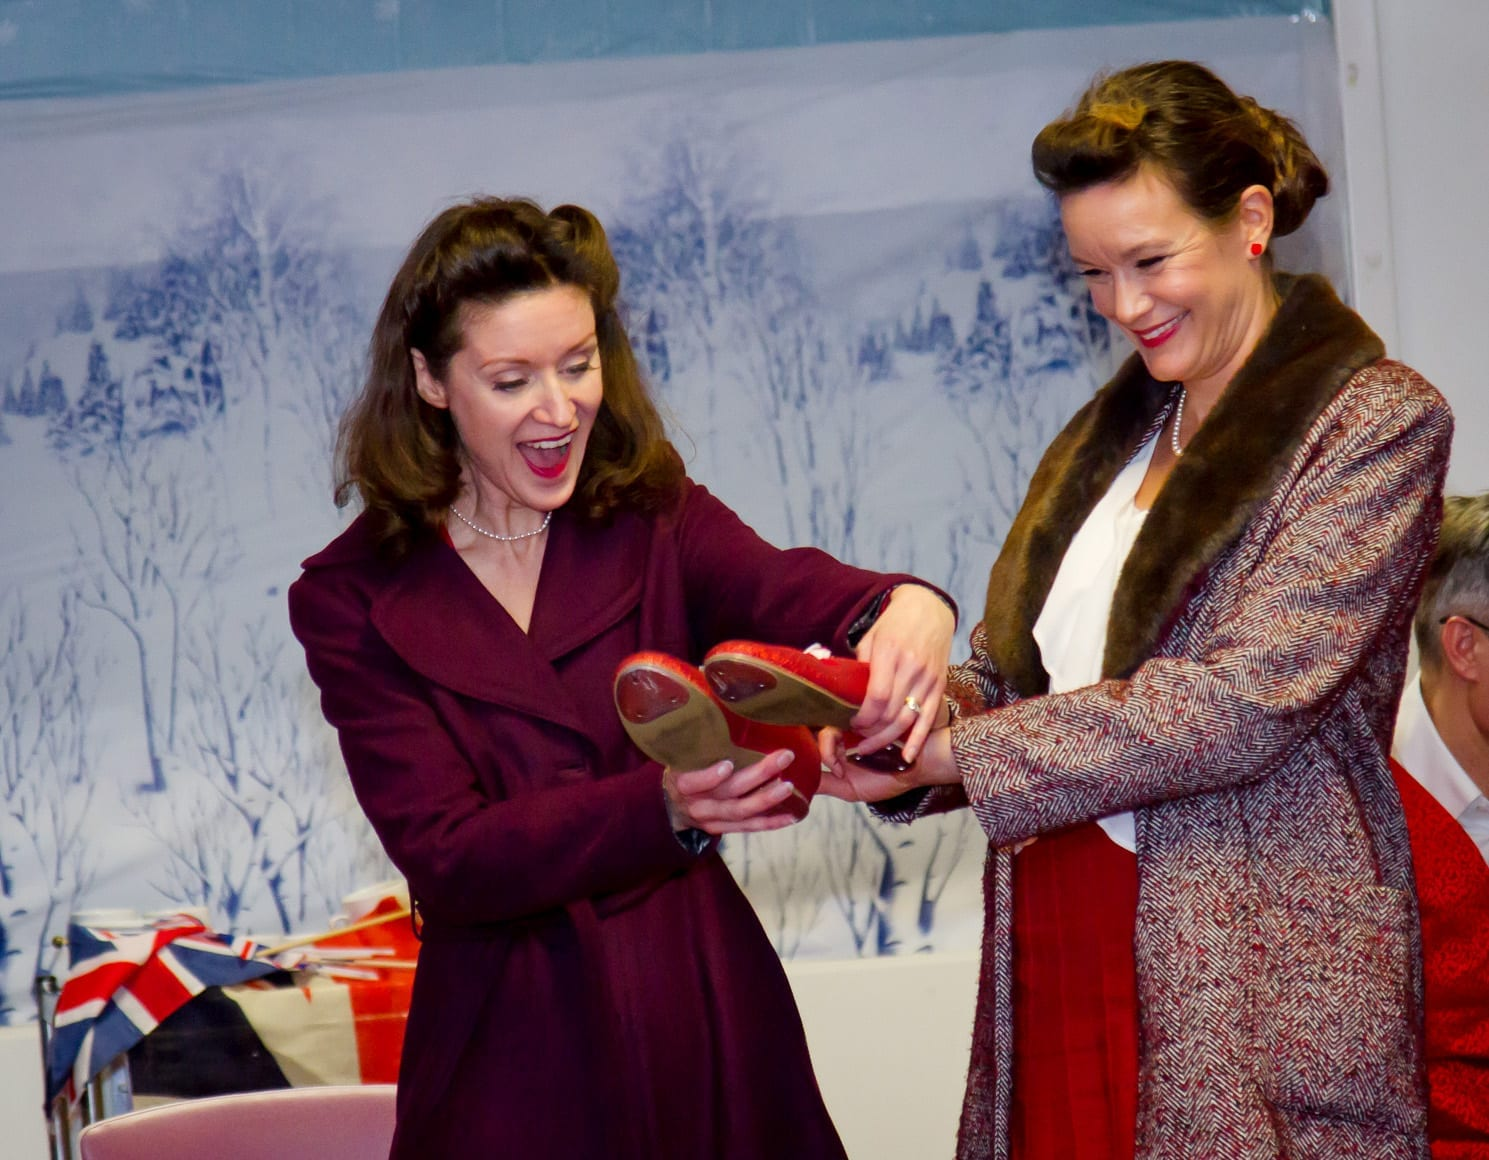 A woman presenting another woman with a pair of red shoes